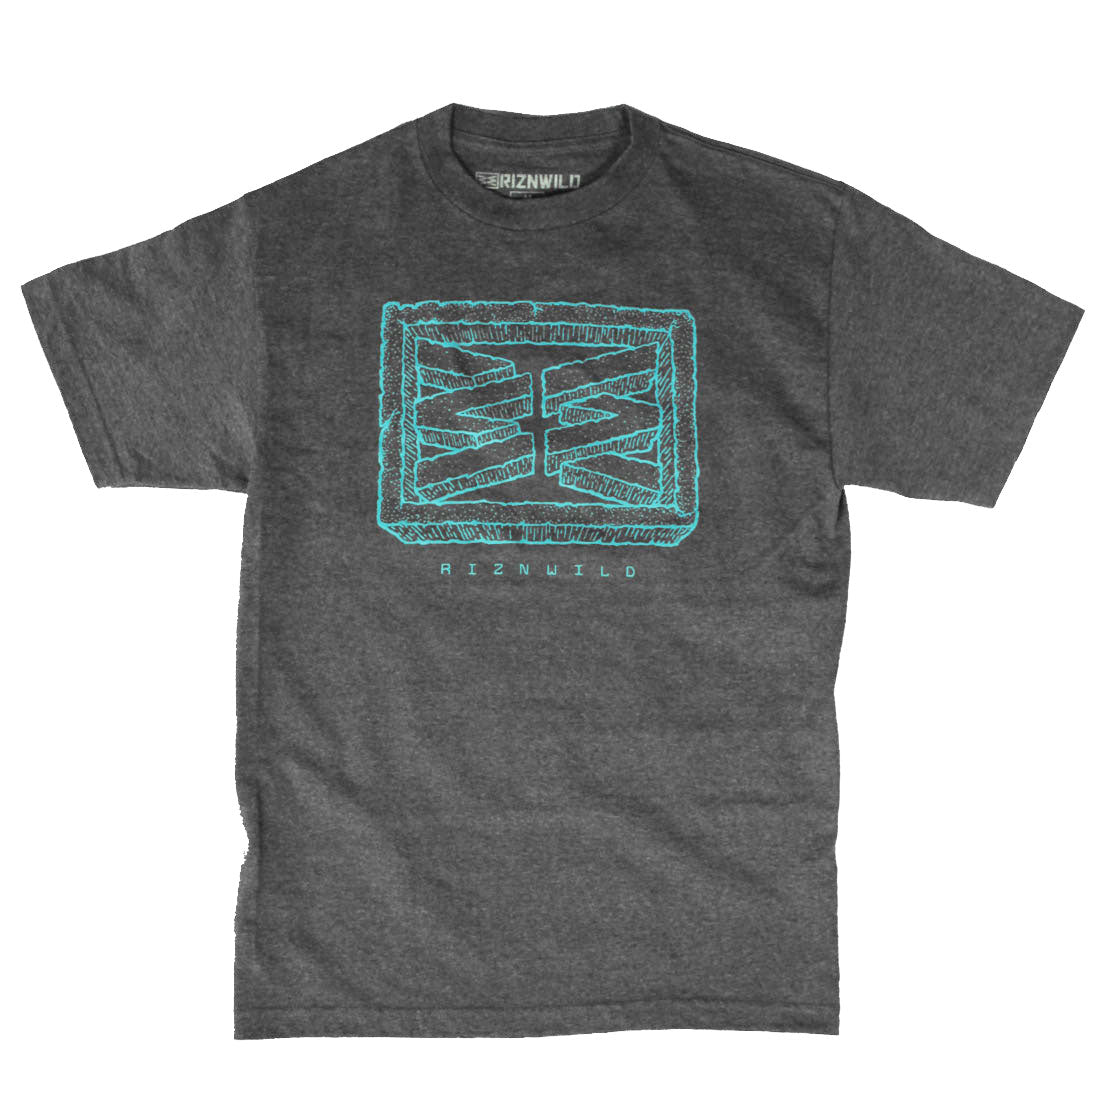 RIZNWILD | men's charcoal heather tee baby blue logo